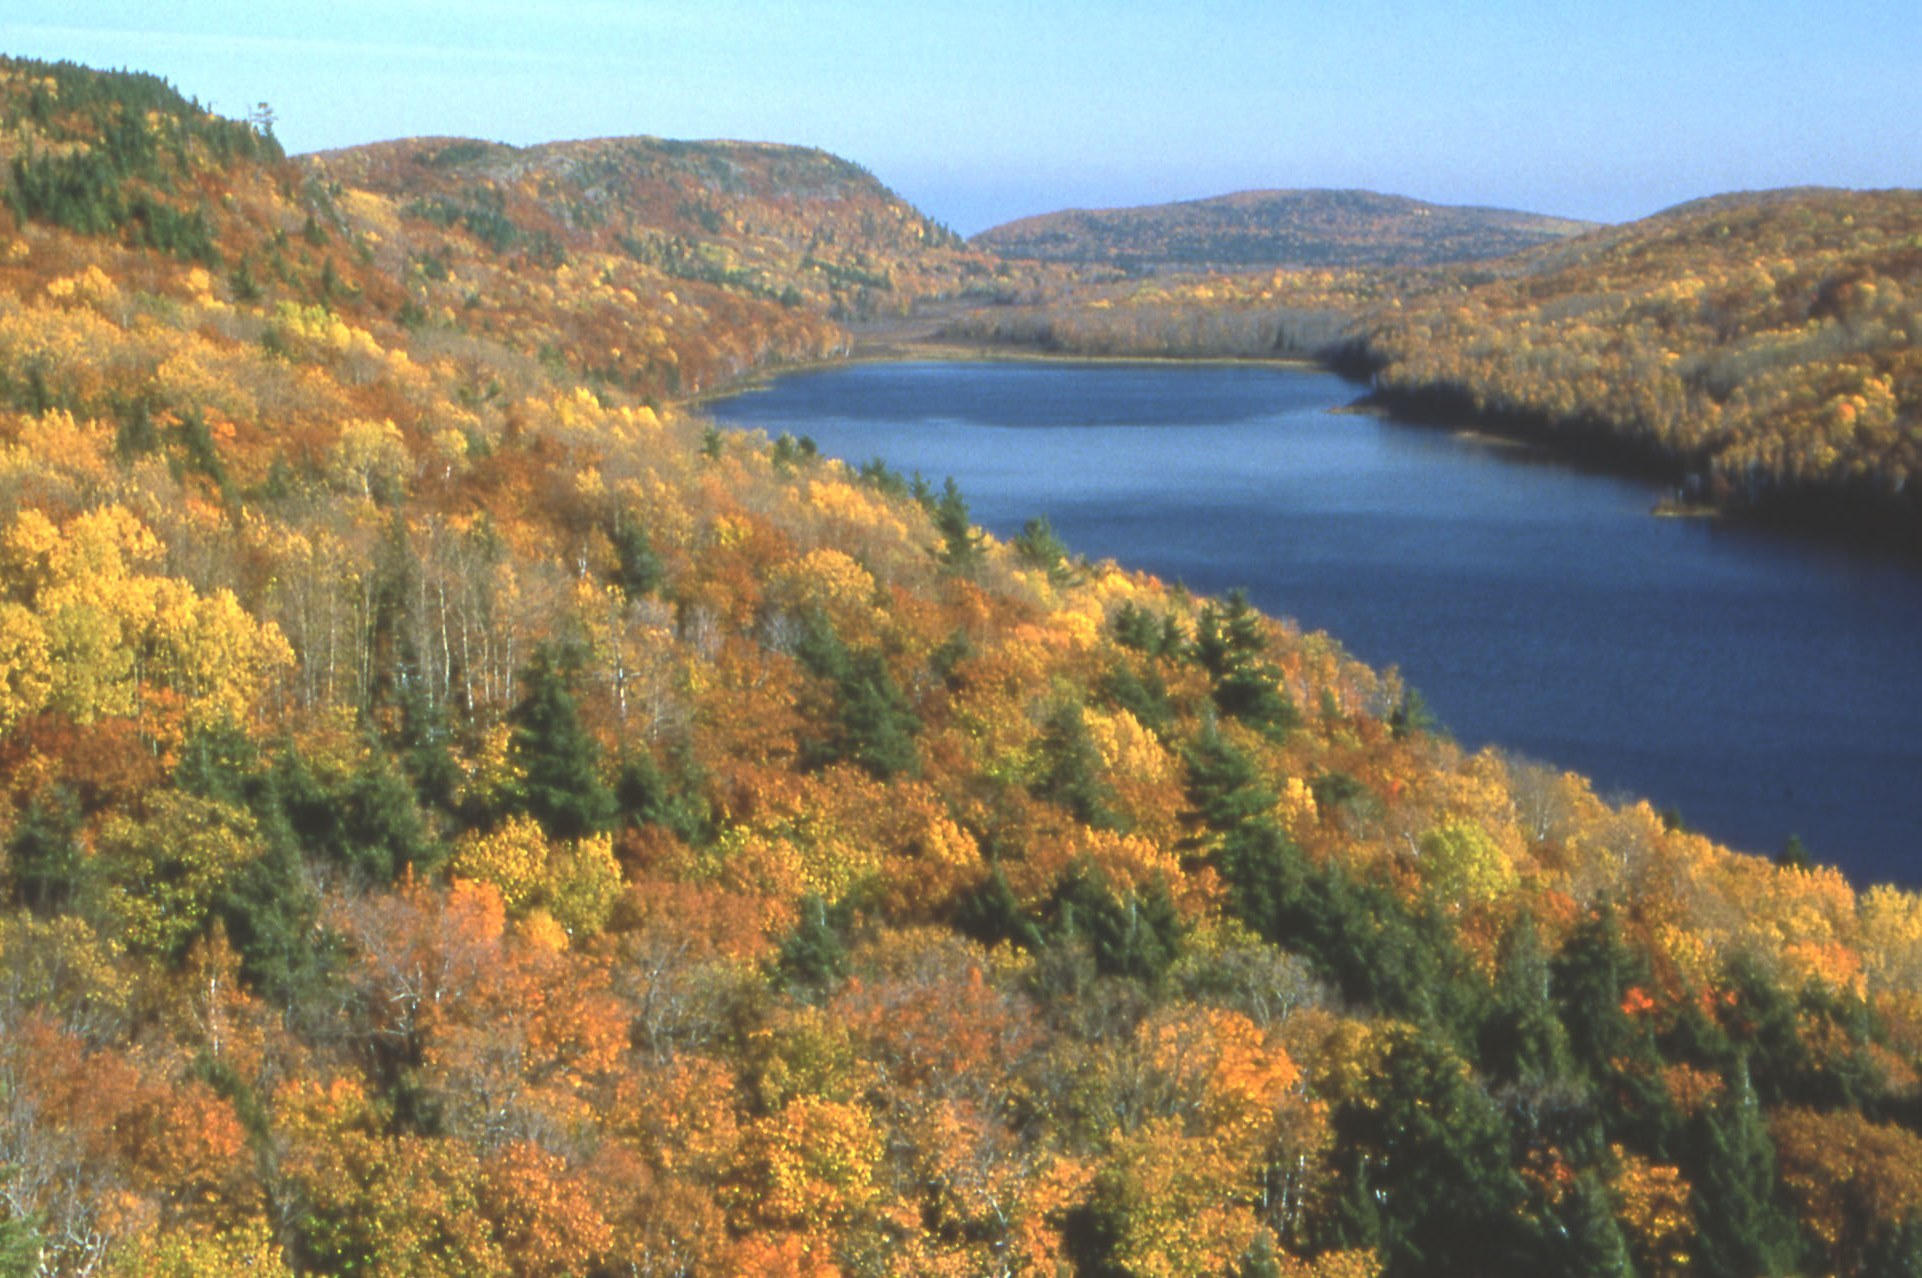 Upper Peninsula fall color at Porcupine Mountains Wilderness State Park.